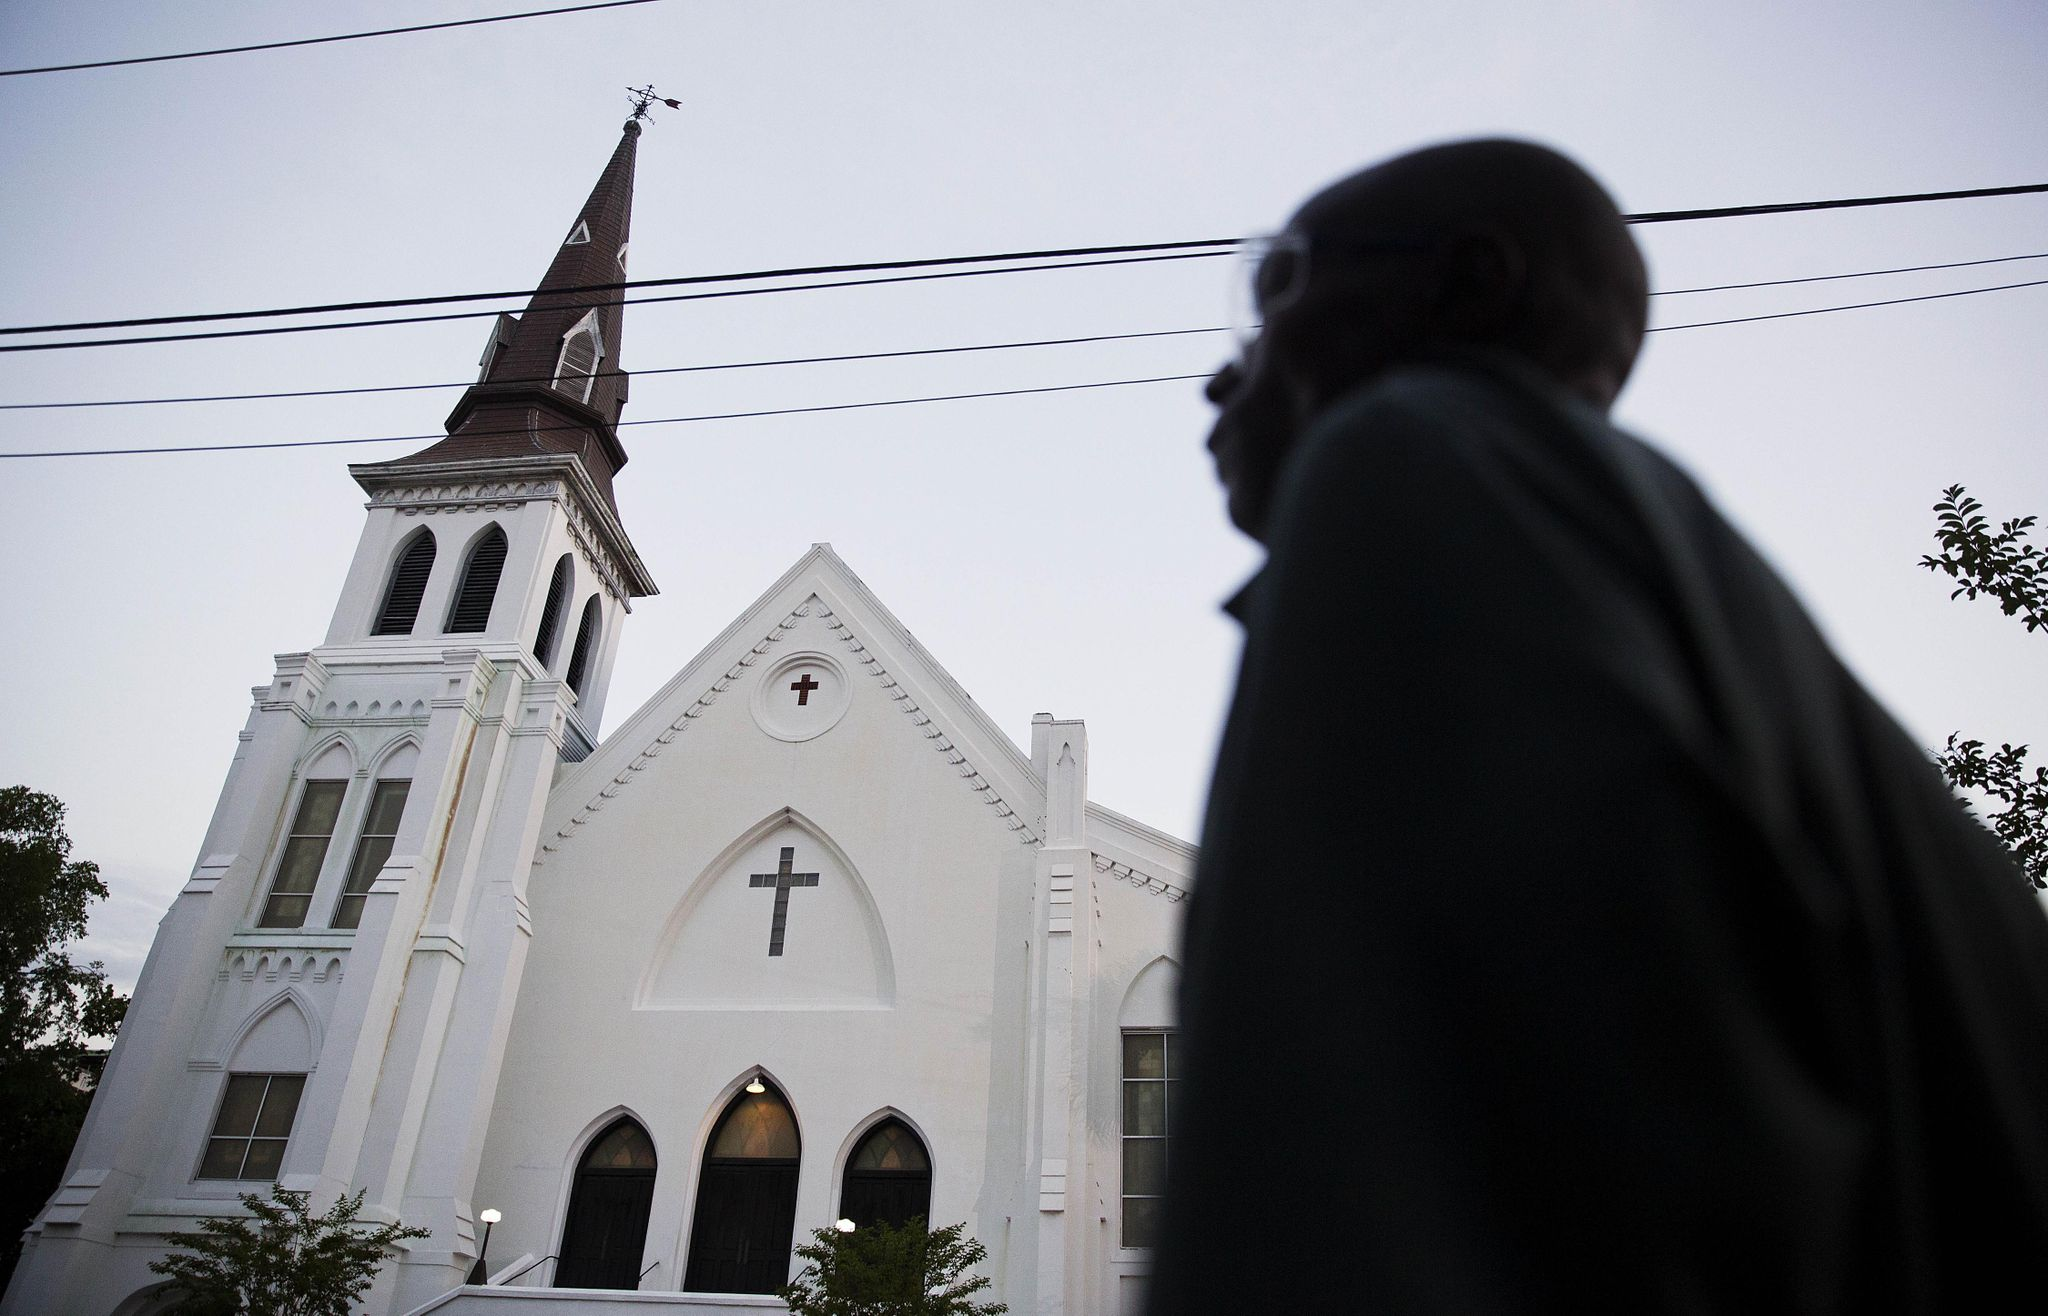 South Carolina church attracts presidential candidates